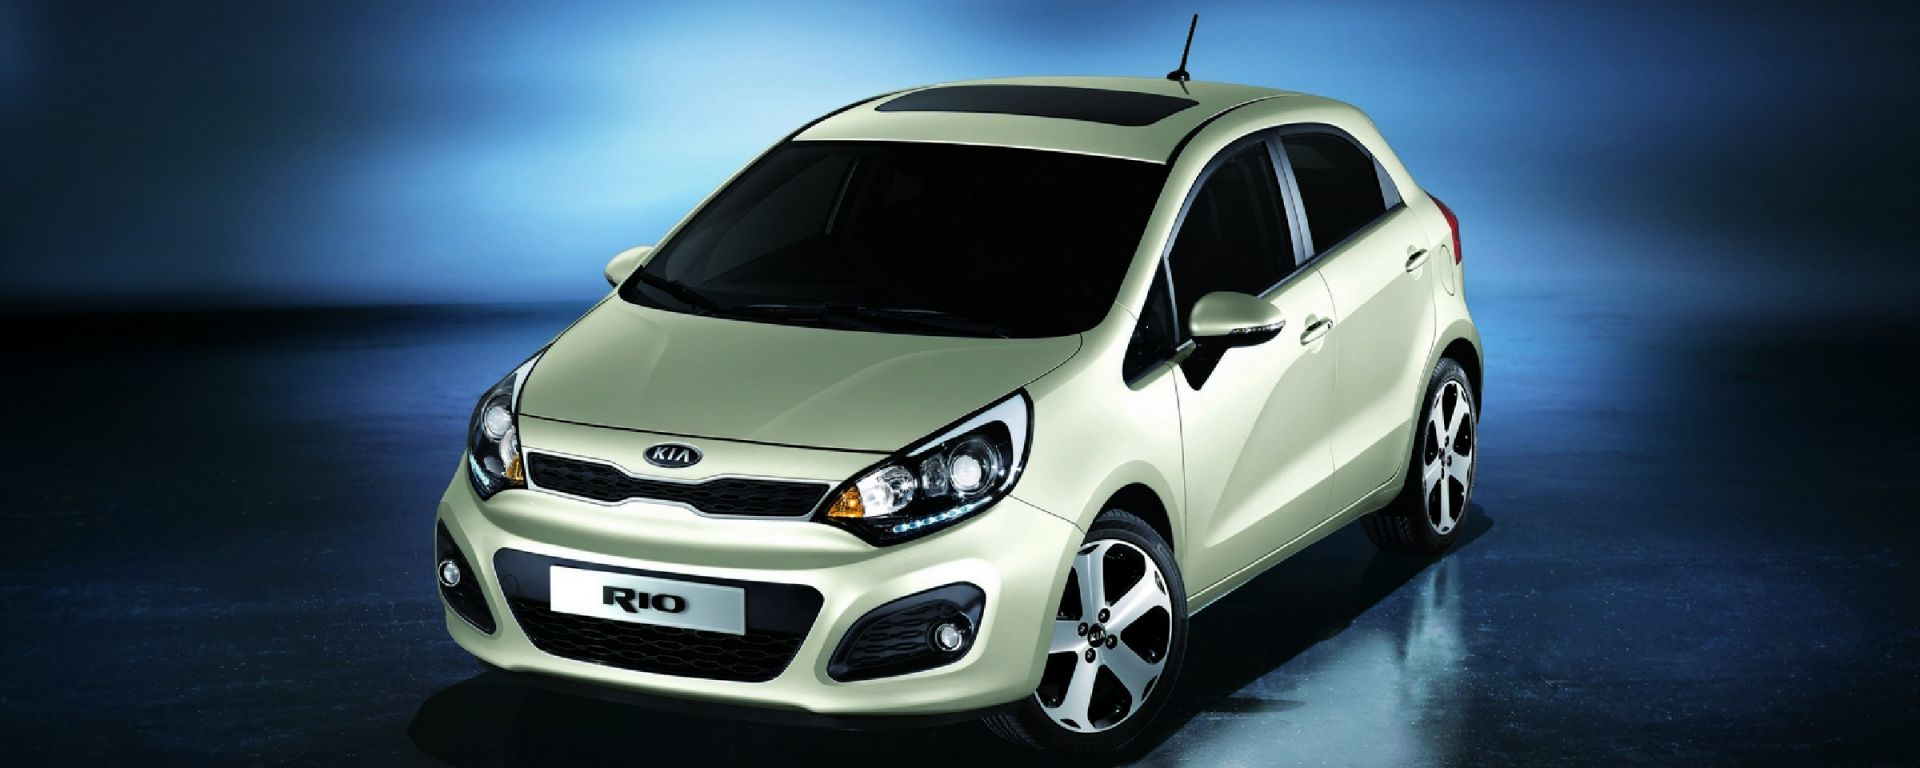 Video Kia Rio 2012